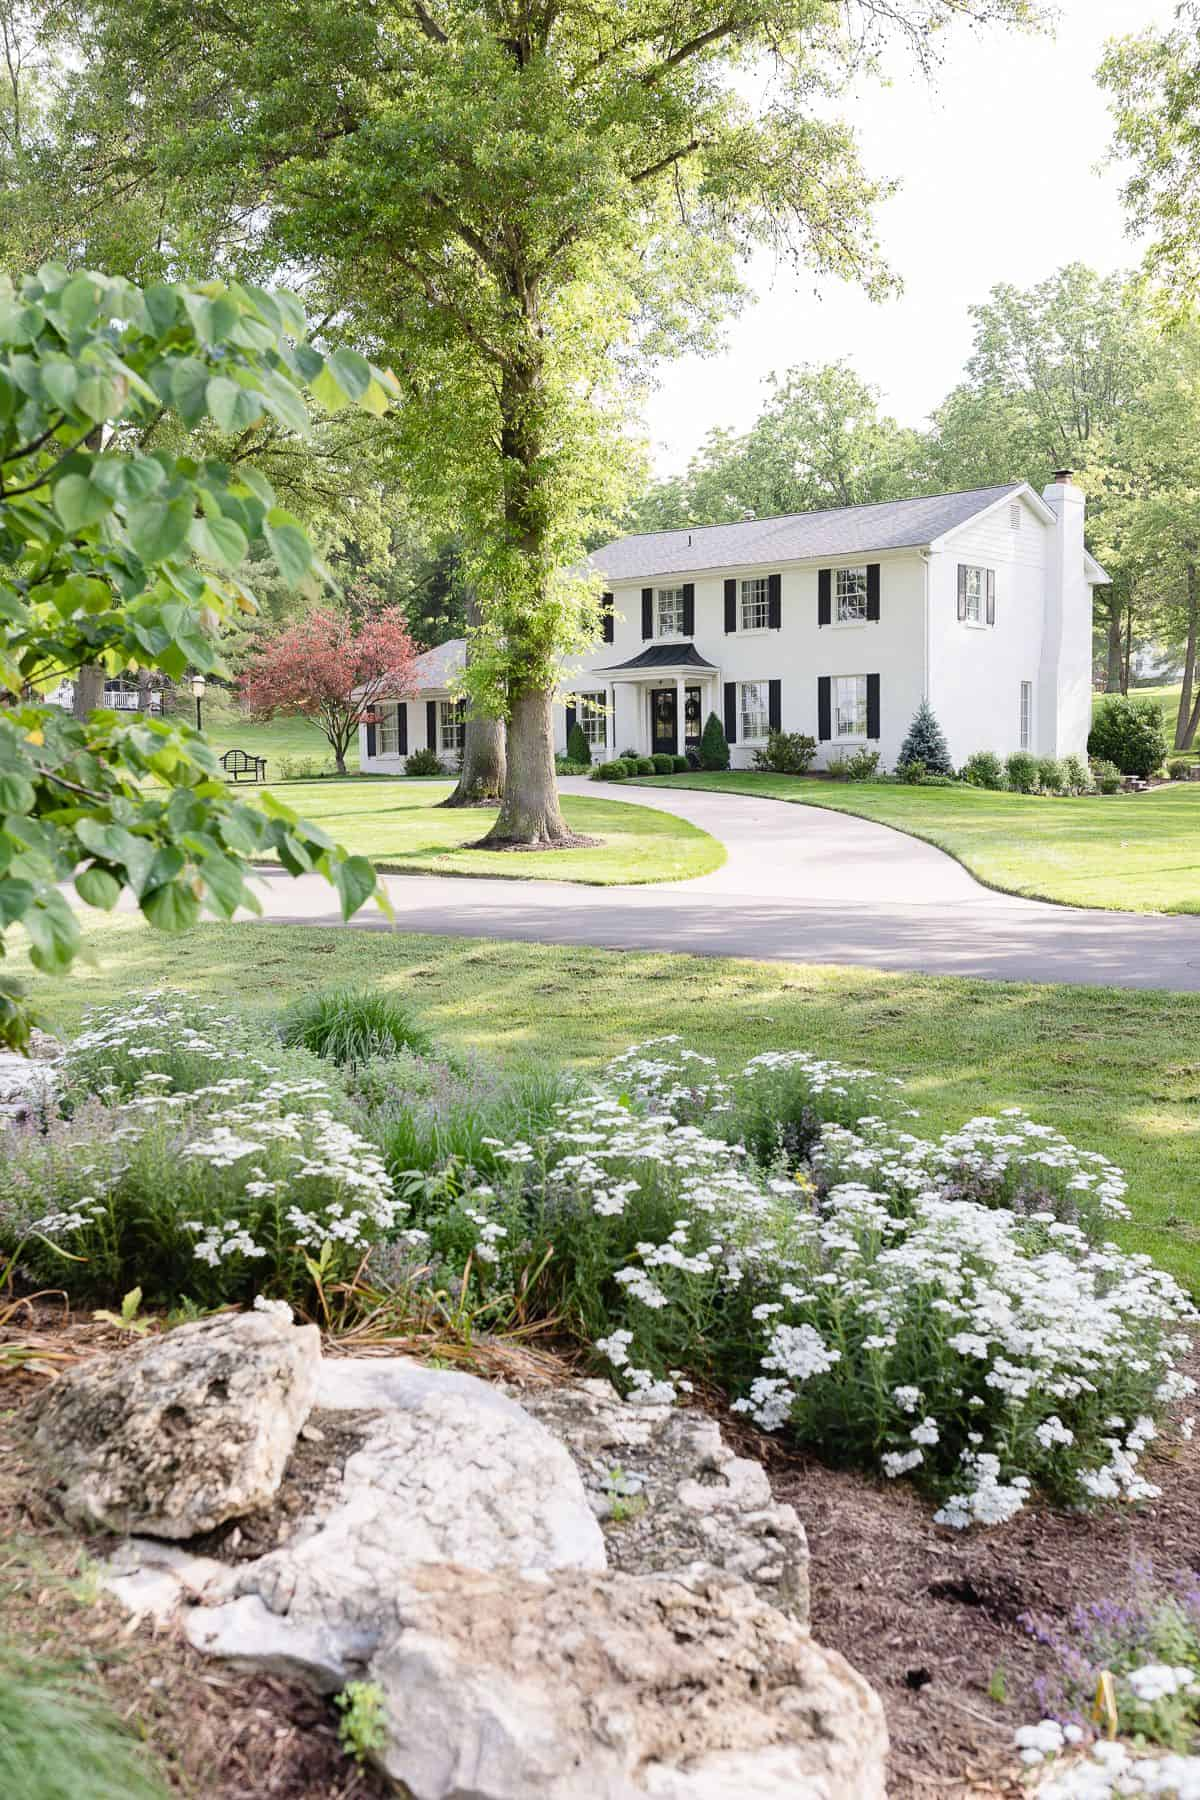 A white brick house sitting amongst green trees and flowers.